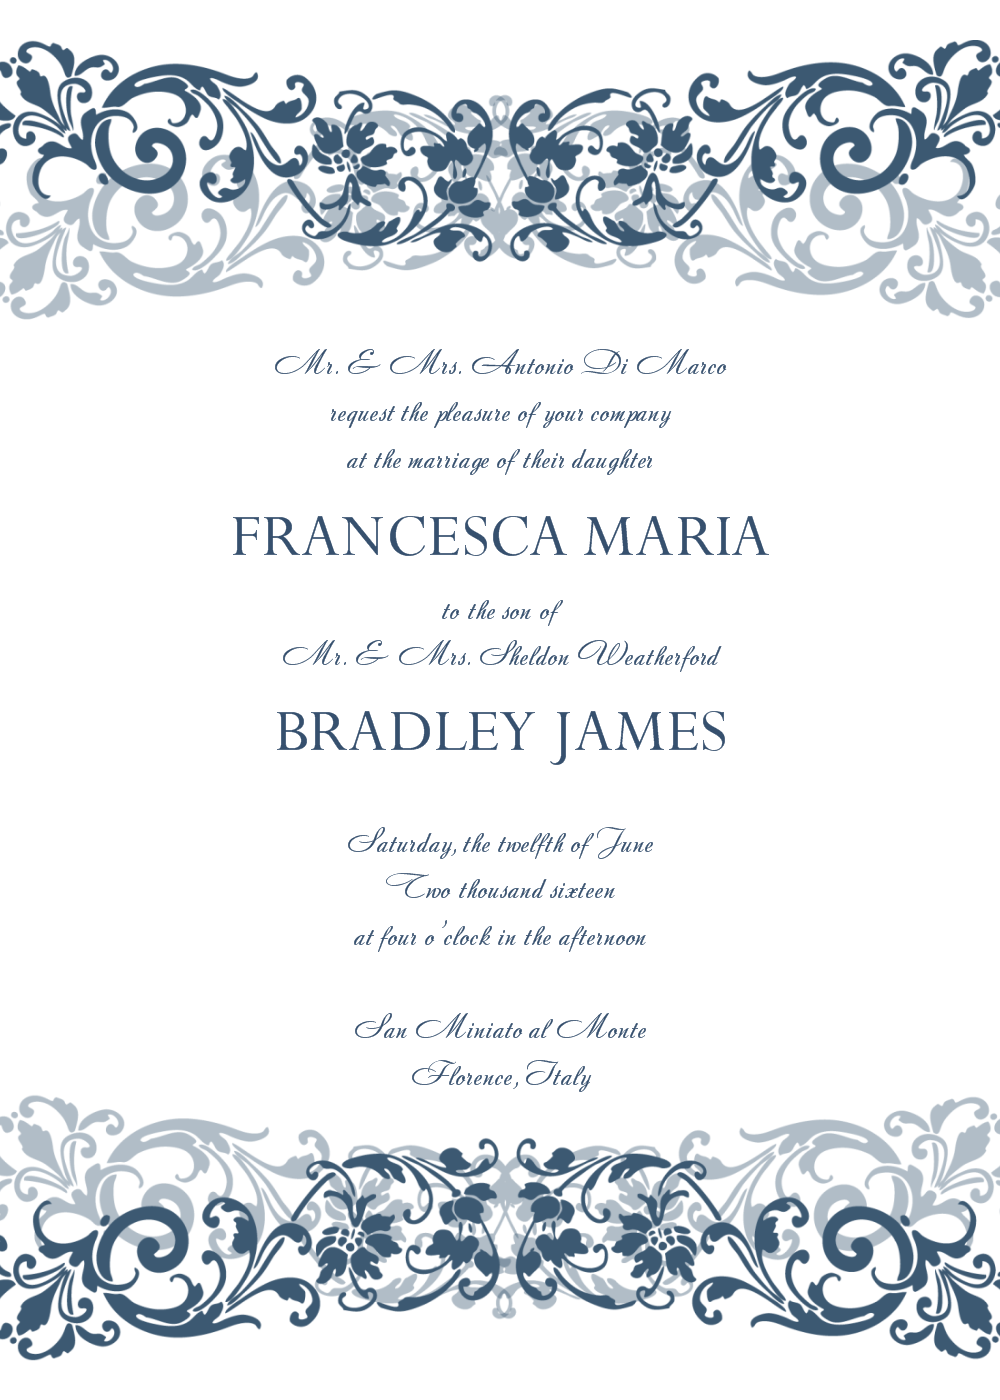 Free Wedding Invitations Templates St Bridal World - Wedding invitation templates: free electronic wedding invitations templates